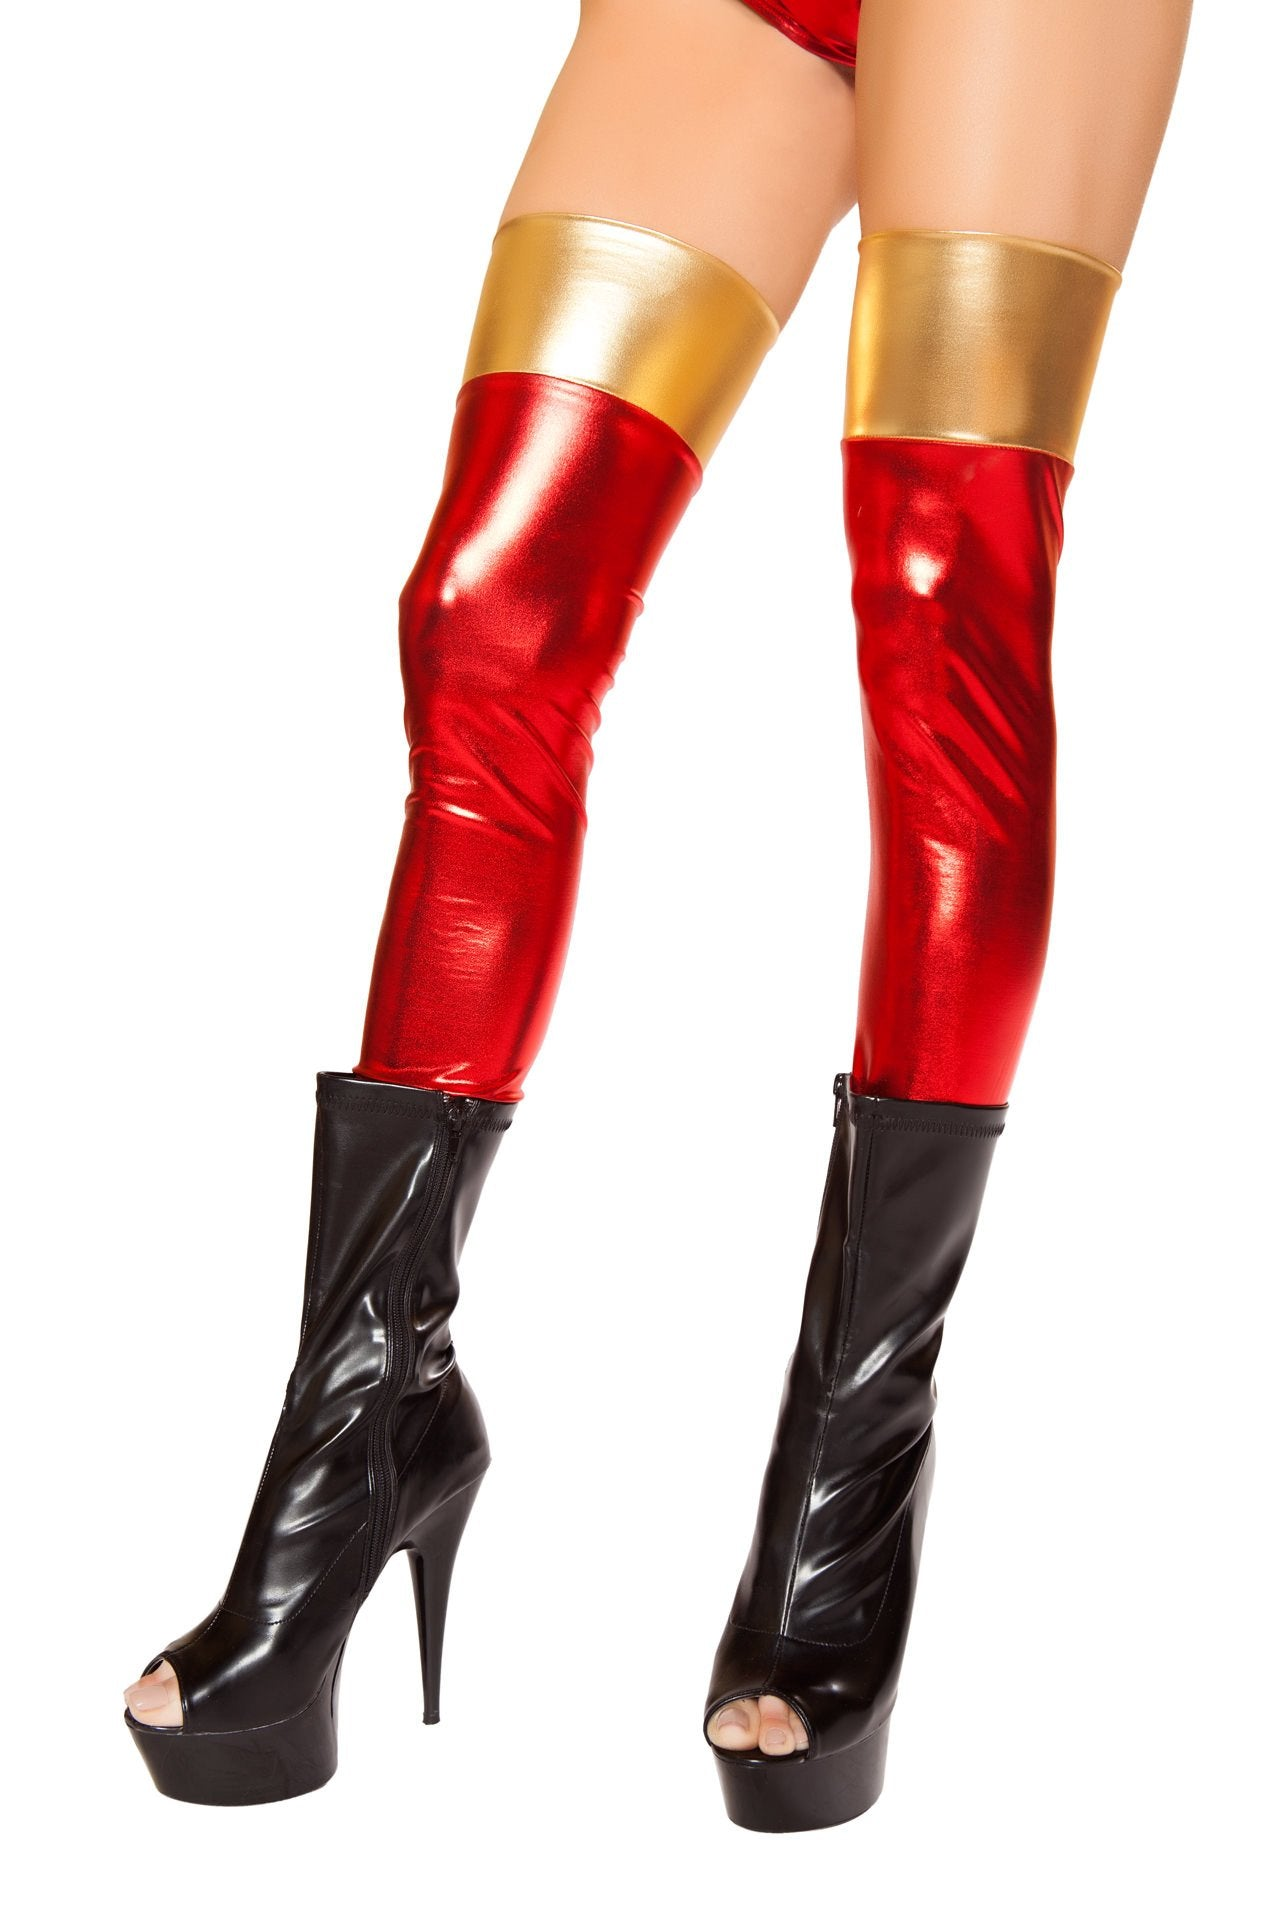 Red/Gold Leggings - PlaythingsMiami